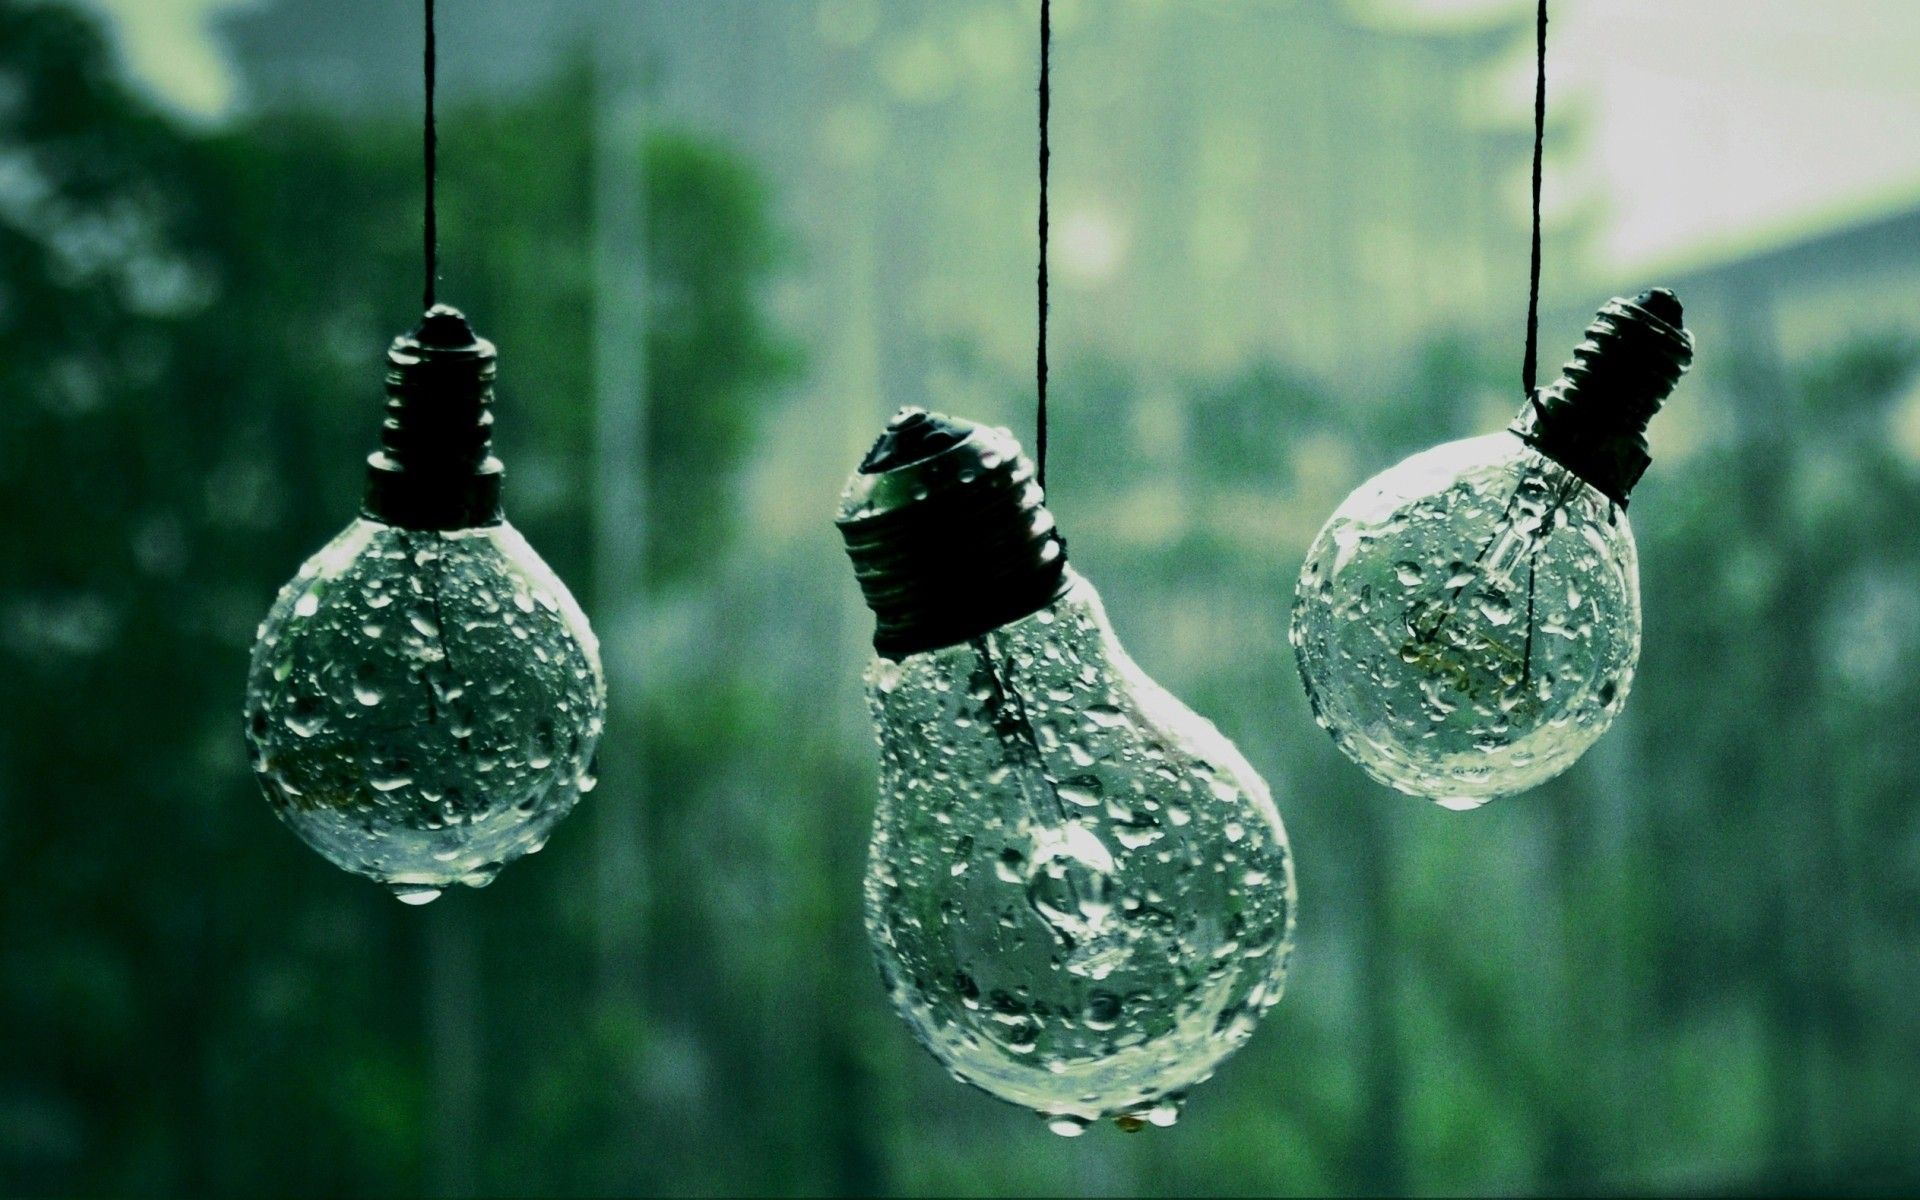 59 Abstract Nature Wallpaper Pictures Green Aesthetic Rain Wallpapers Aesthetic Colors